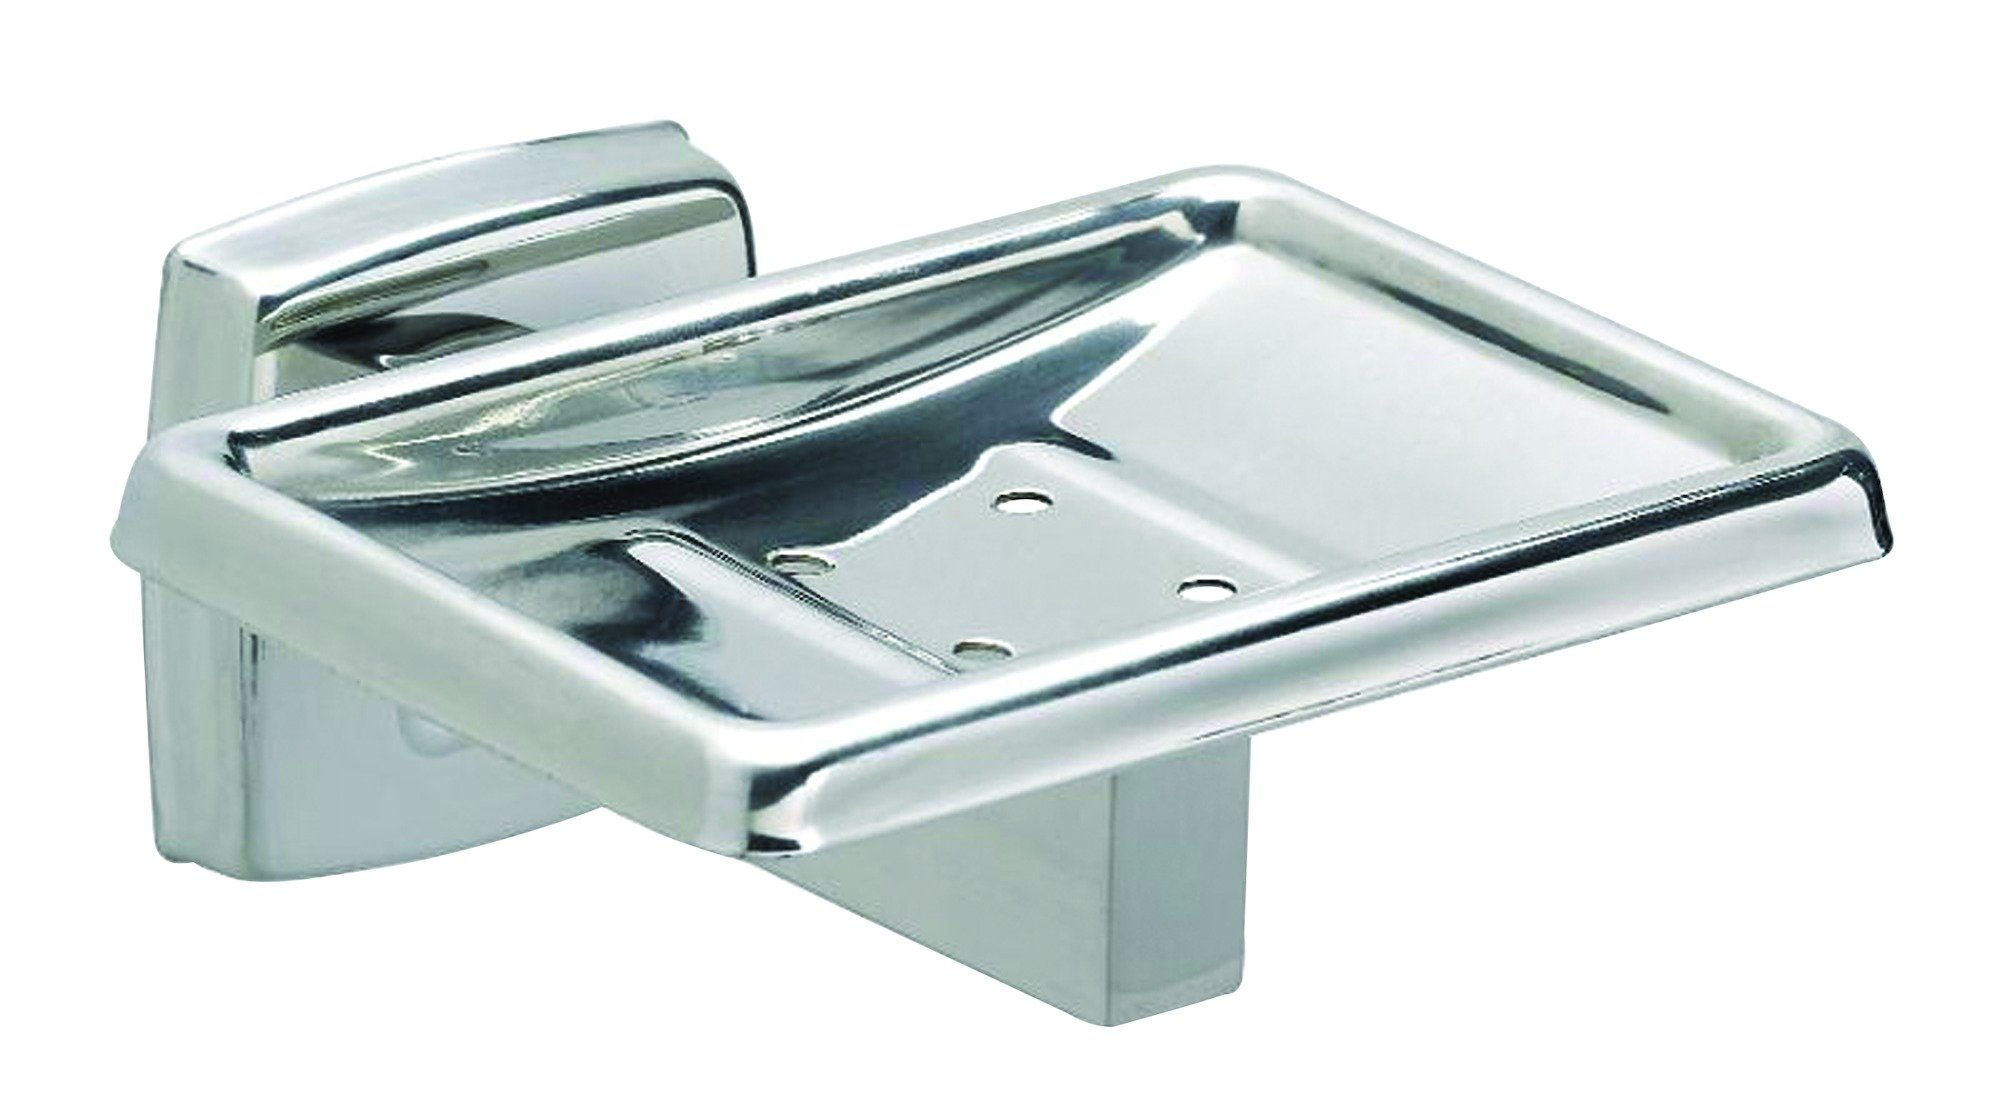 Stainless Steel Soap Dish 9015-63 | Accurate Door & Hardware, Inc.